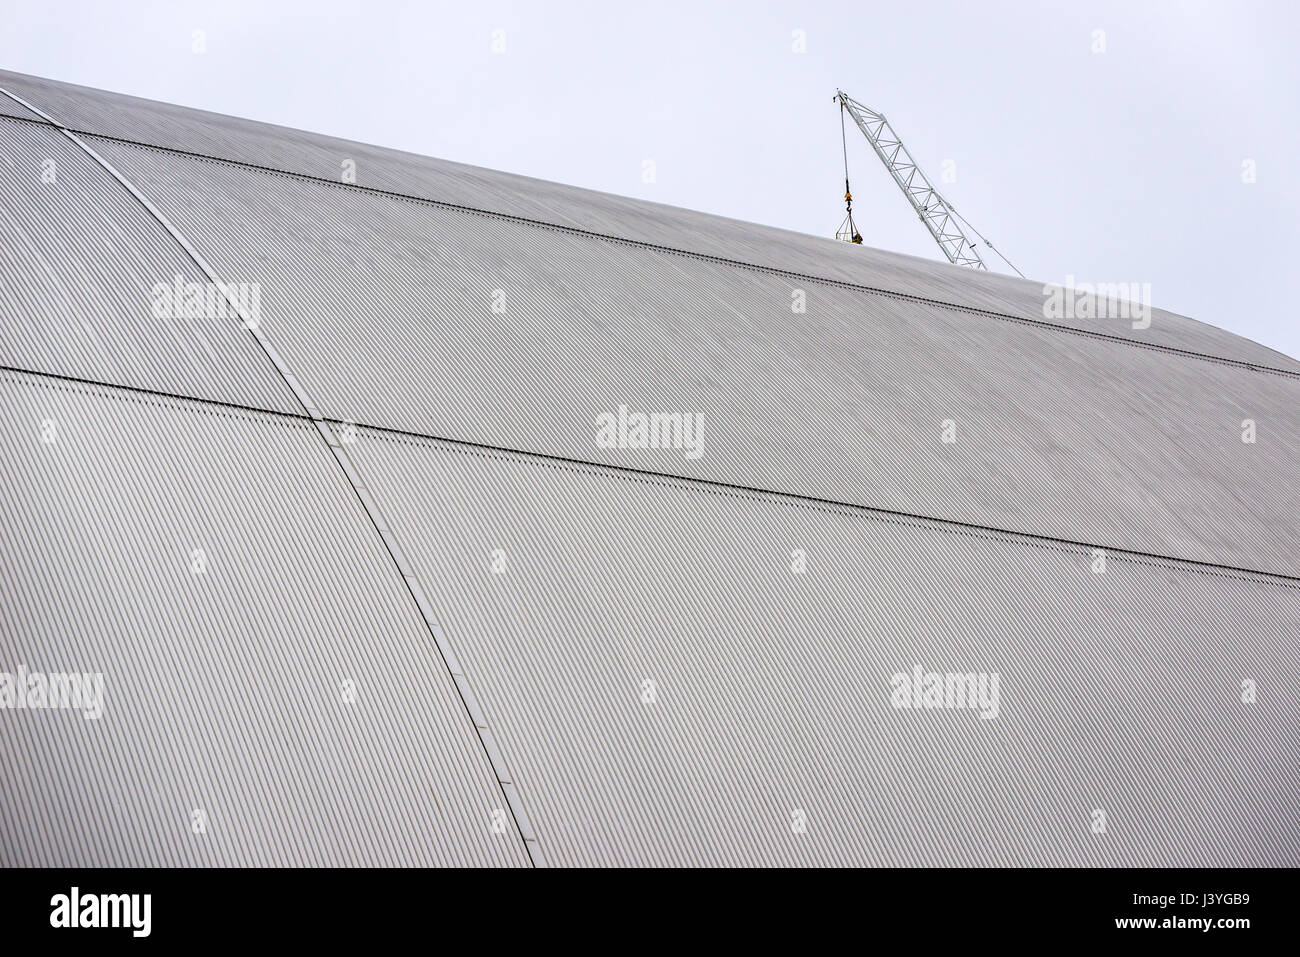 Close up of New Safe Confinement structure for reactor No. 4 of Chernobyl Nuclear Power Plant, Zone of Alienation - Stock Image